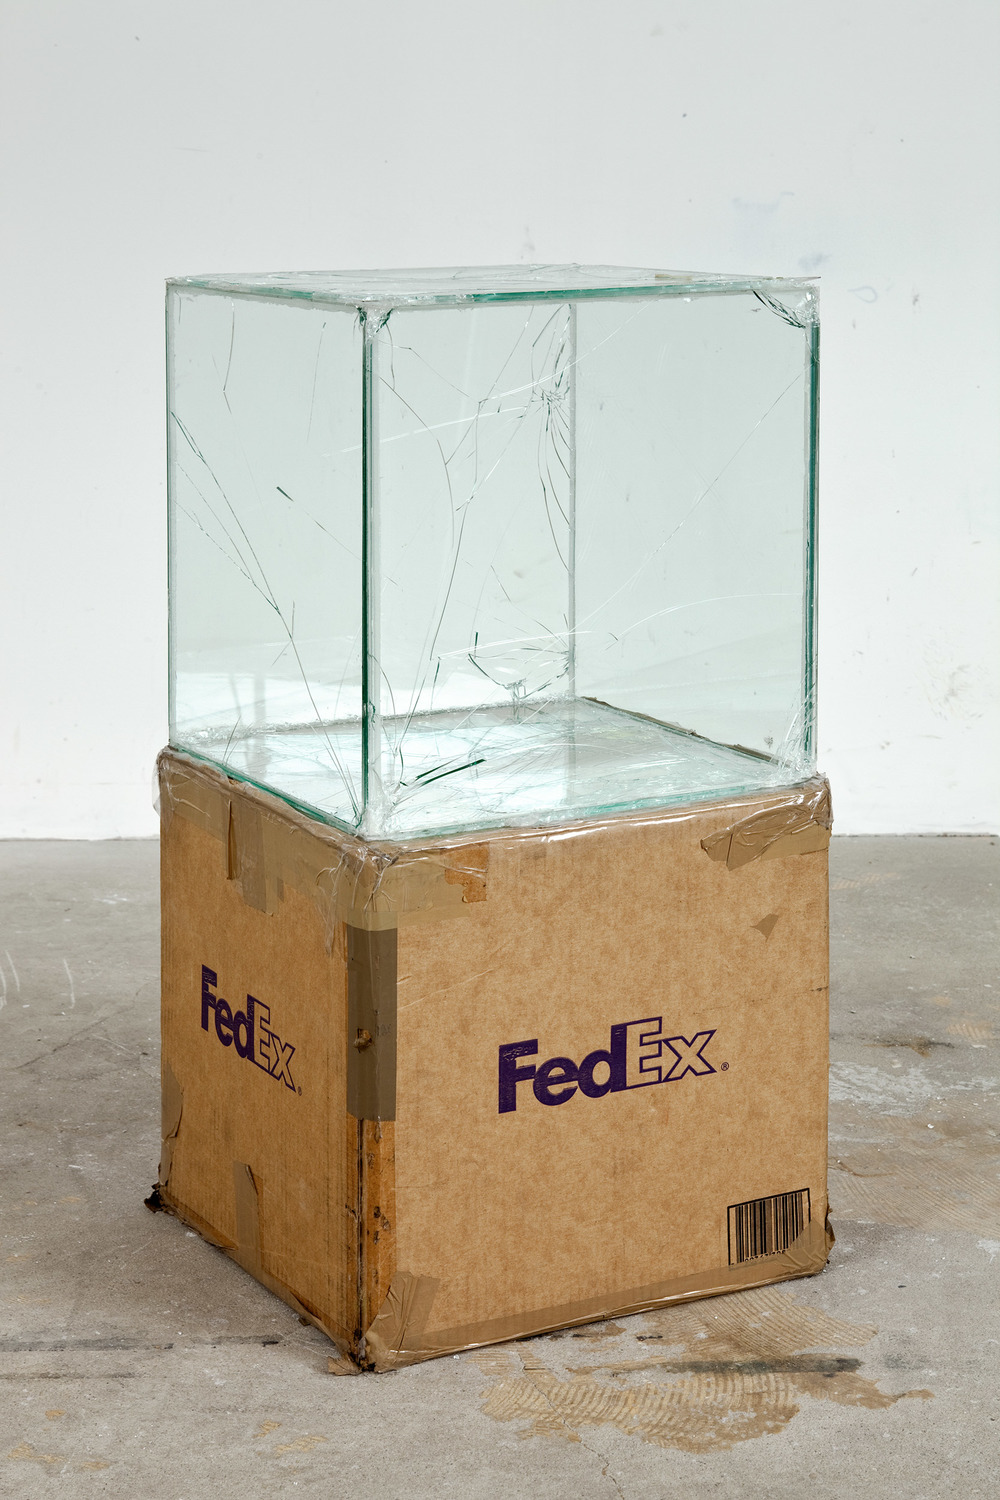 FedEx Kraft Box 2005 FEDEX 330504 10/05 SSCC, Priority Overnight, Los Angeles-Miami trk#865344981299, October 29–30, 2008, Priority Overnight, Miami–Ann Arbor trk#861049125115, March 03–04, 2009, Standard Overnight, Ann Arbor–Los Angeles trk#868274625749, July 09–10, 2009, Standard Overnight, Los Angeles–San Francisco trk#878069766471, August 27–28, 2009, Standard Overnight, San Francisco–Los Angeles trk#870342520145, November 12–13, 2009, International Priority, Los Angeles–London trk#798269222978, April 10–12, 2012    2008–   Laminated glass, FedEx shipping box, accrued FedEx shipping and tracking labels, silicone, metal, tape  16 x 16 x 16 inches   Pulley, Cogwheels, Mirrors, and Windows, 2009